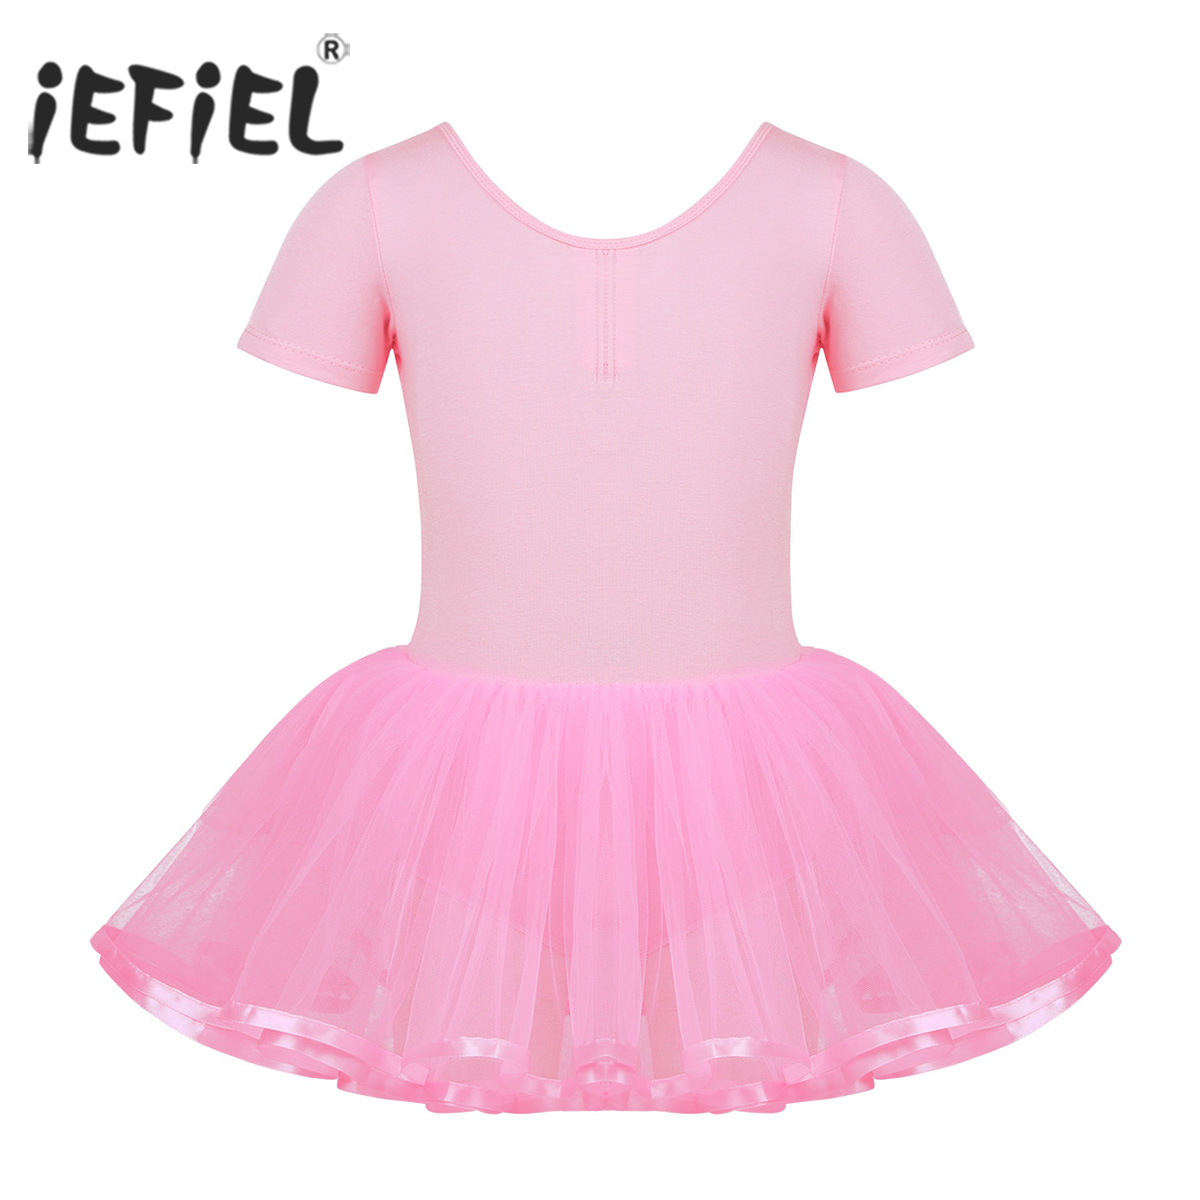 Kids Girls Dance Class Dress Cotton Top Bodice Bowtie Back Ballet Dance Gymnastics Exercise Leotard Tutu Dress for Performance